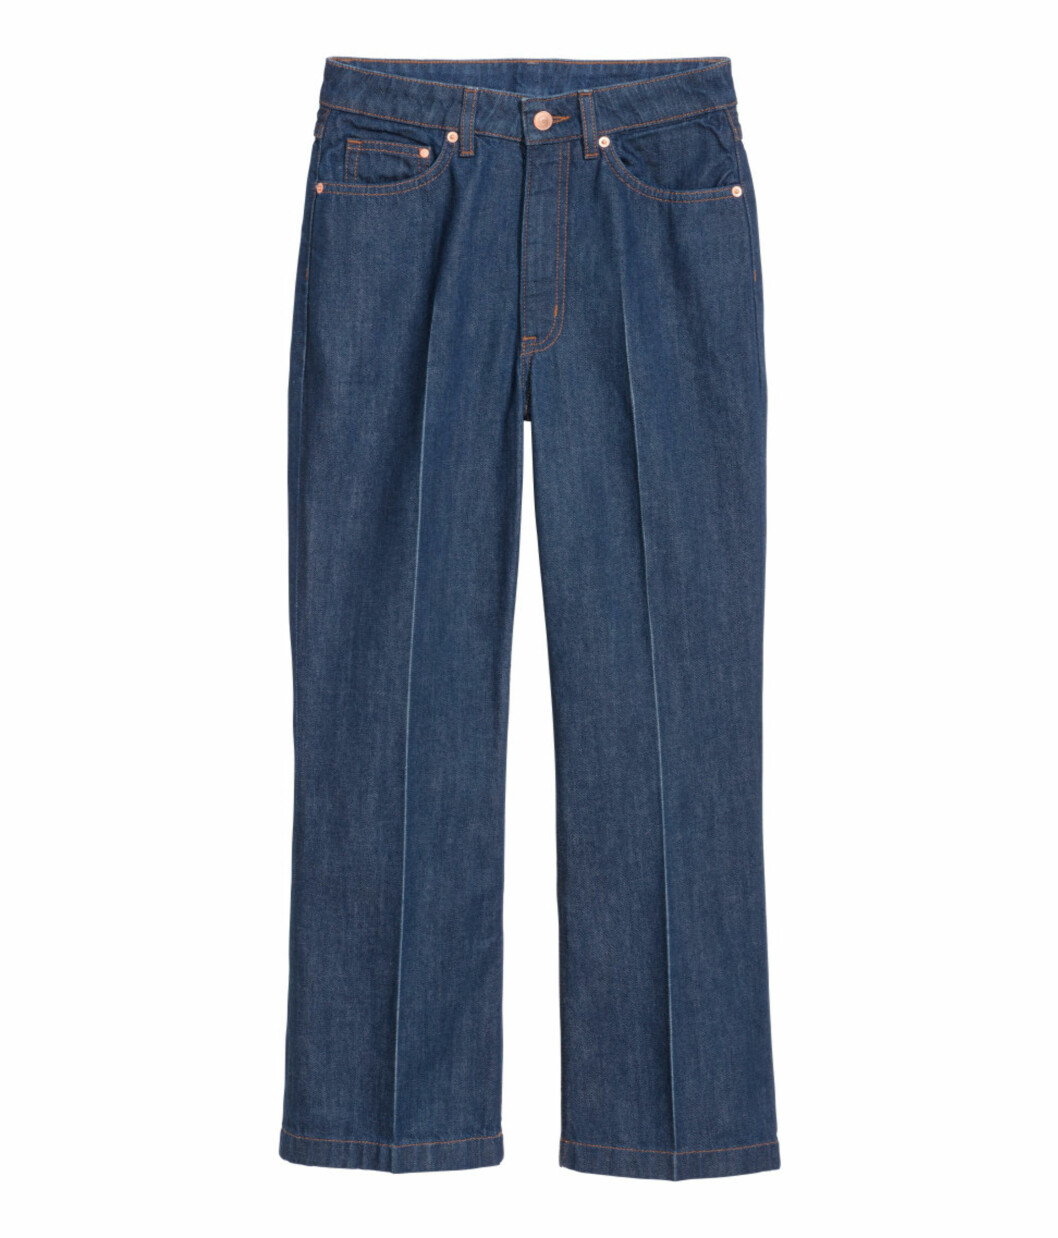 Jeans fra H&M  499,-  http://www.hm.com/no/product/75890?article=75890-B